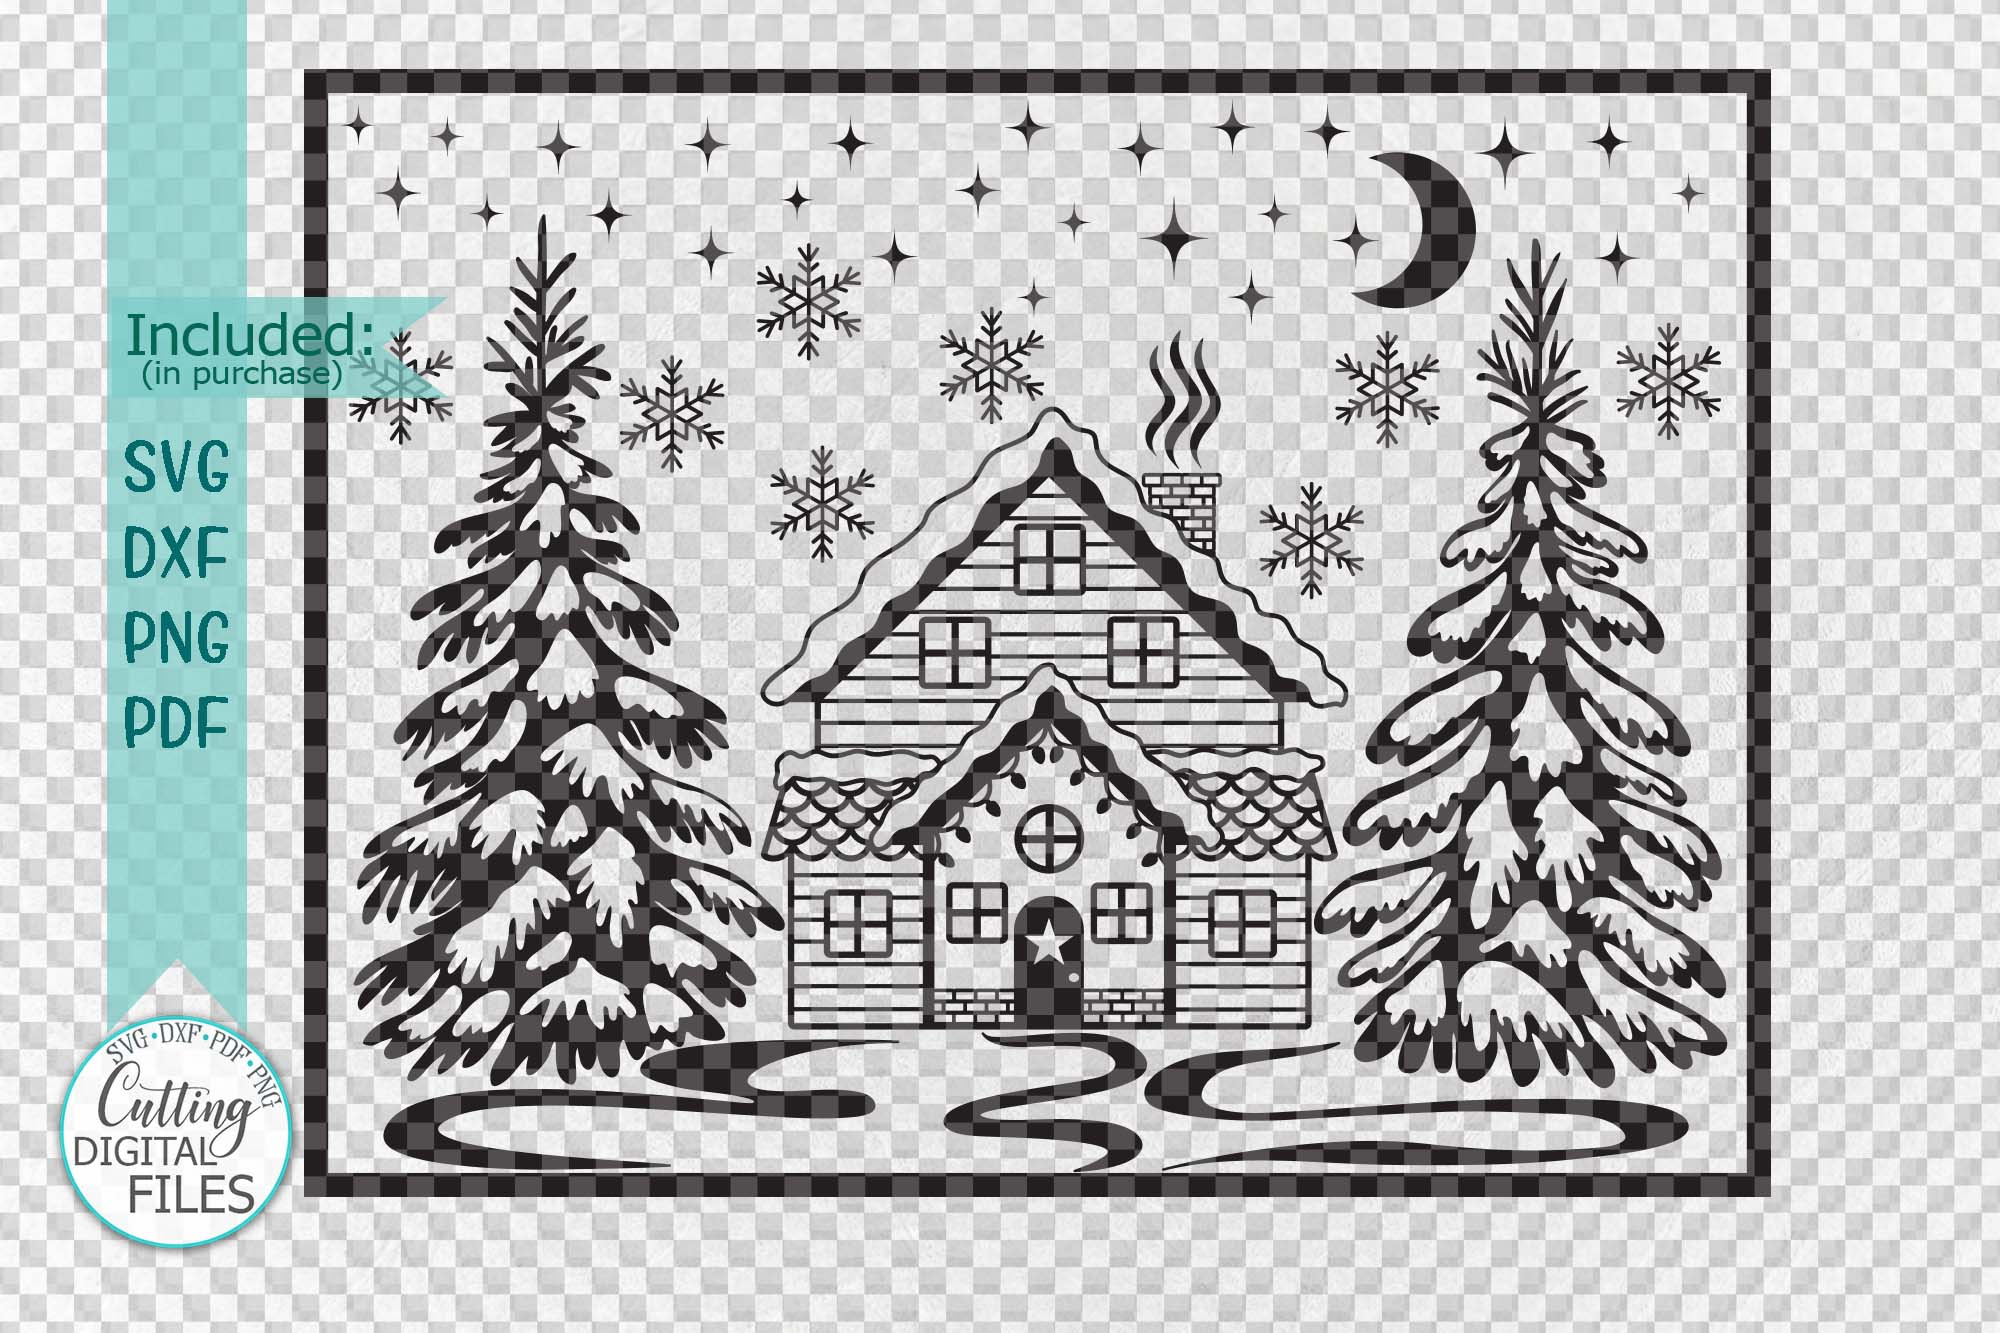 Winter Christmas House Scene Landscape with Trees svg cut example image 2